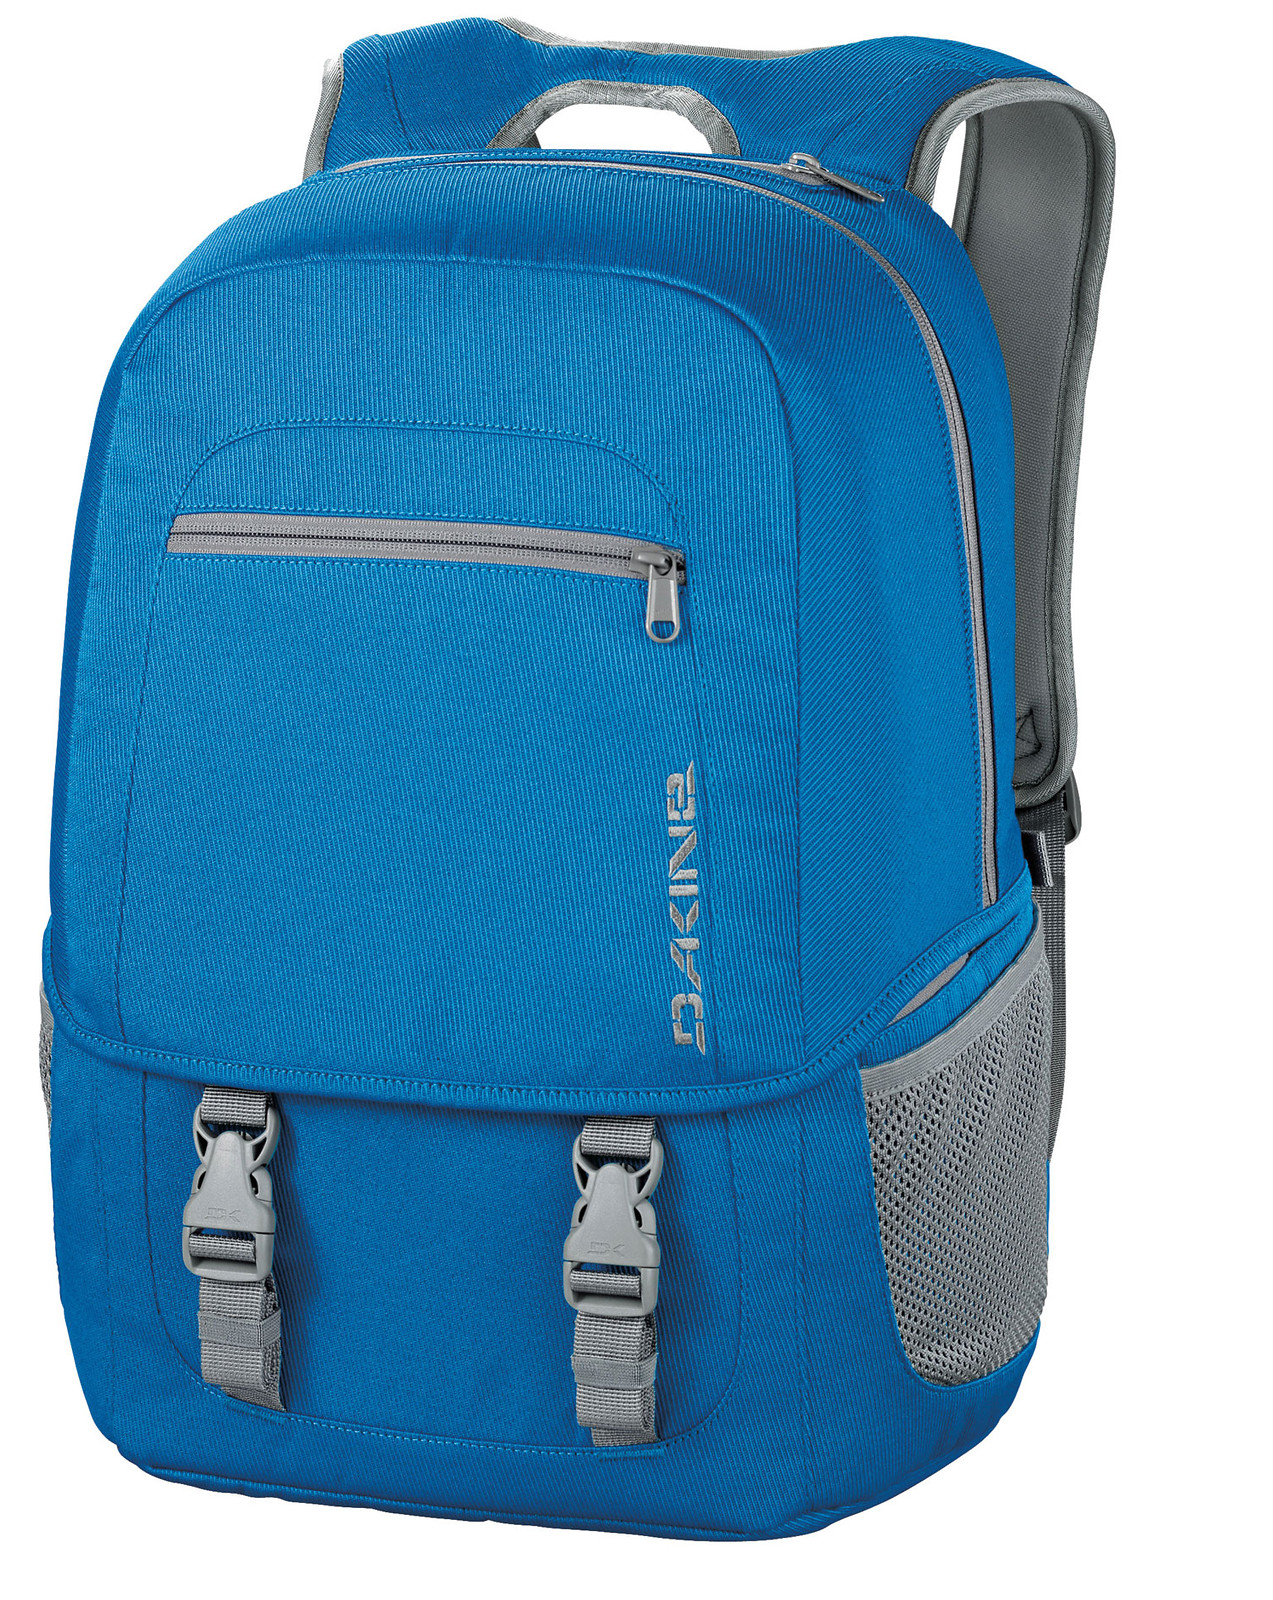 Dakine Coast Cooler Surf Backpack Blue - Reviews, Comparisons ...